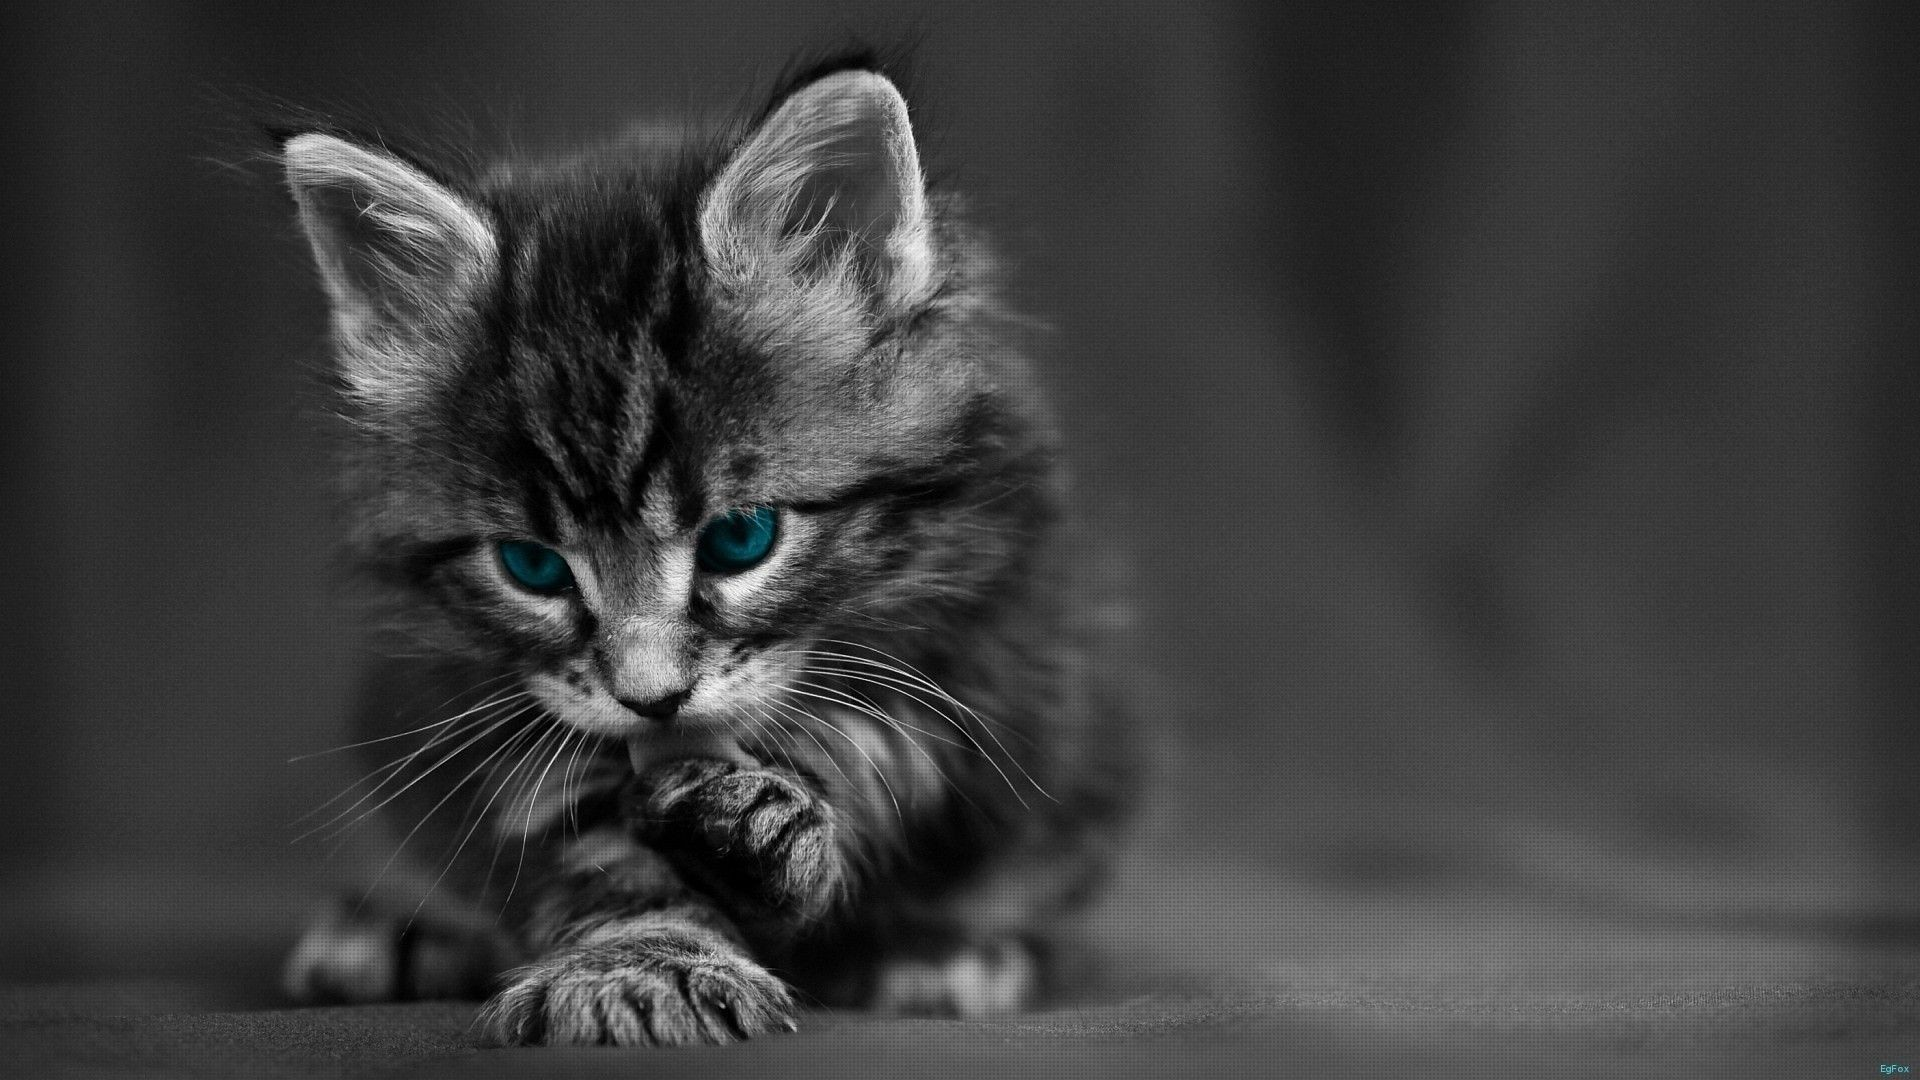 1920x1080 Wallpaper HD 1080p Black And White Cat - Tuffboys.com